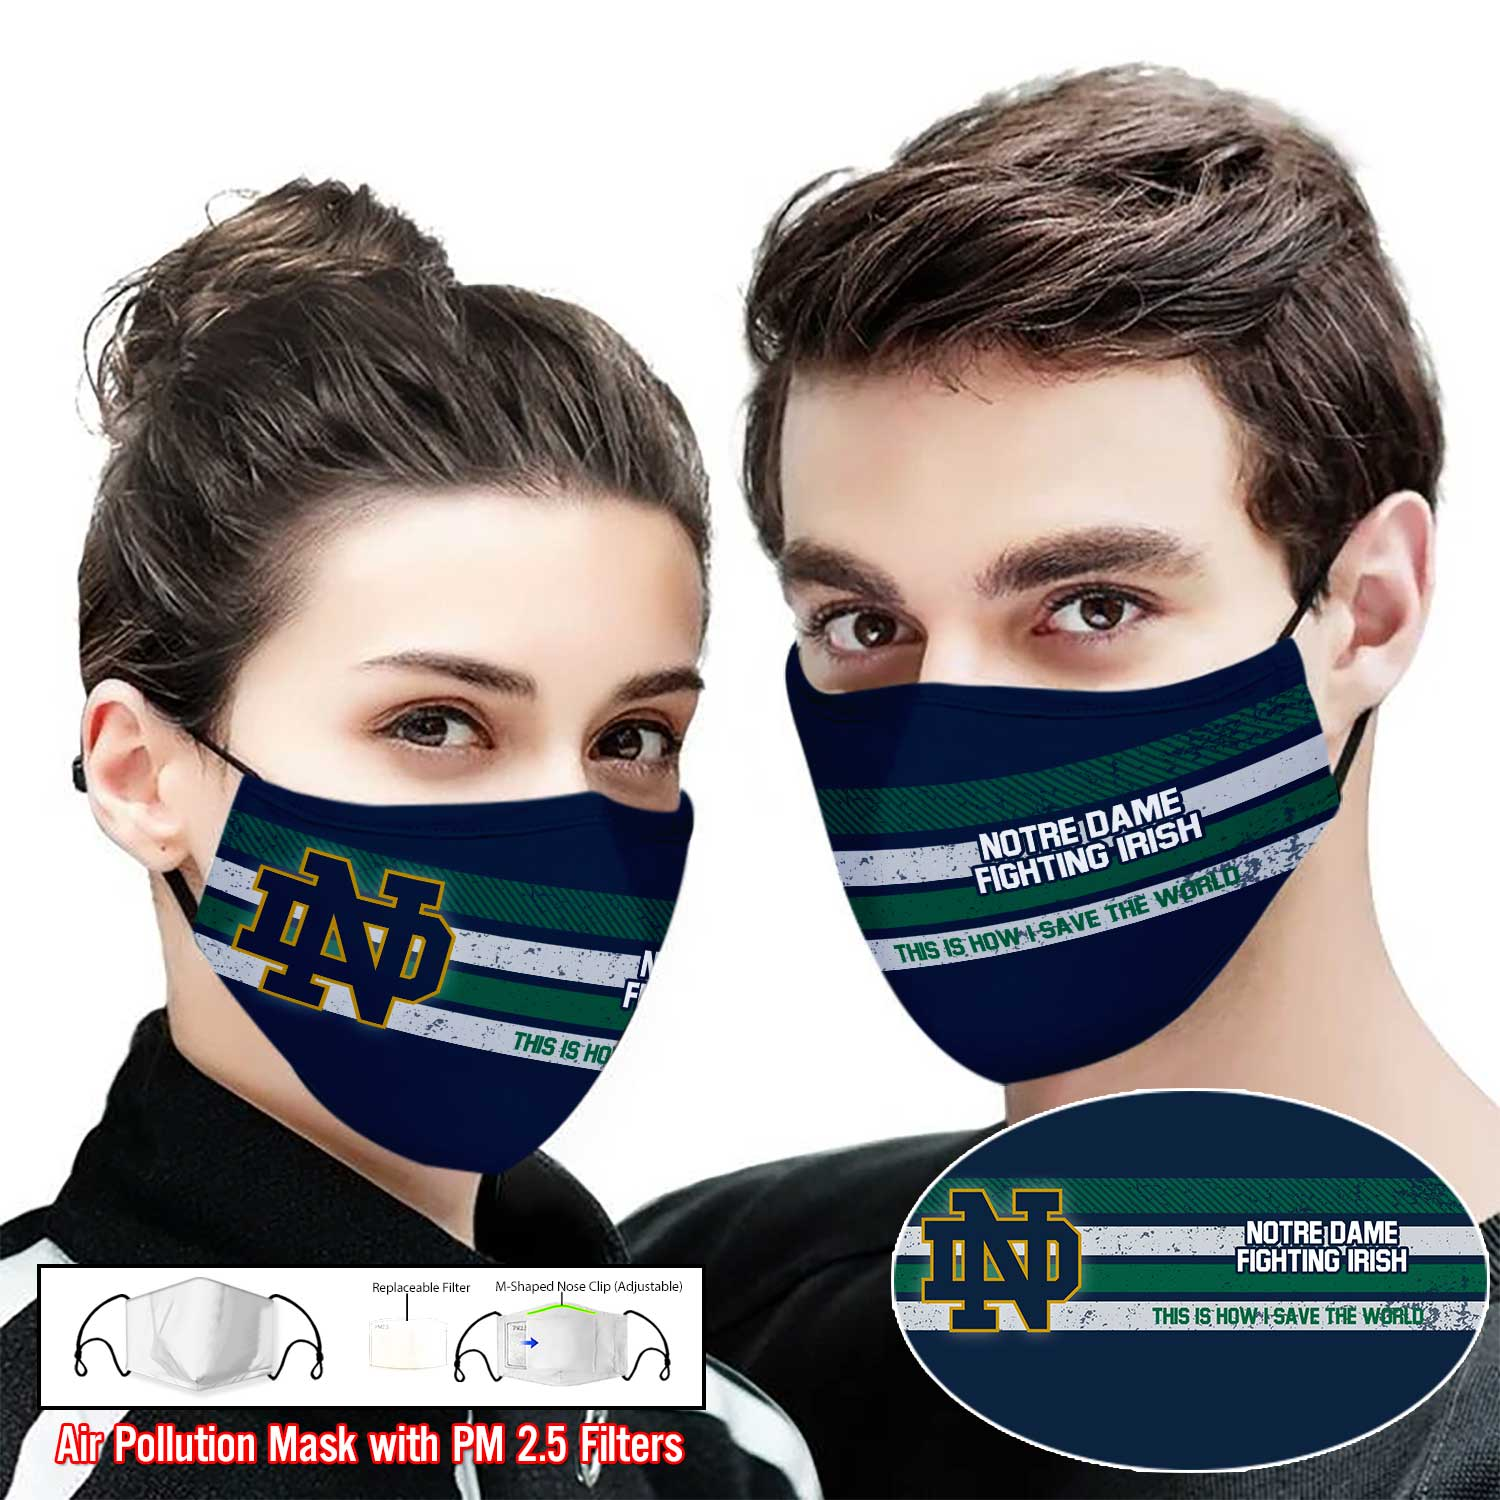 Notre dame fighting irish this is how i save the world full printing face mask 1